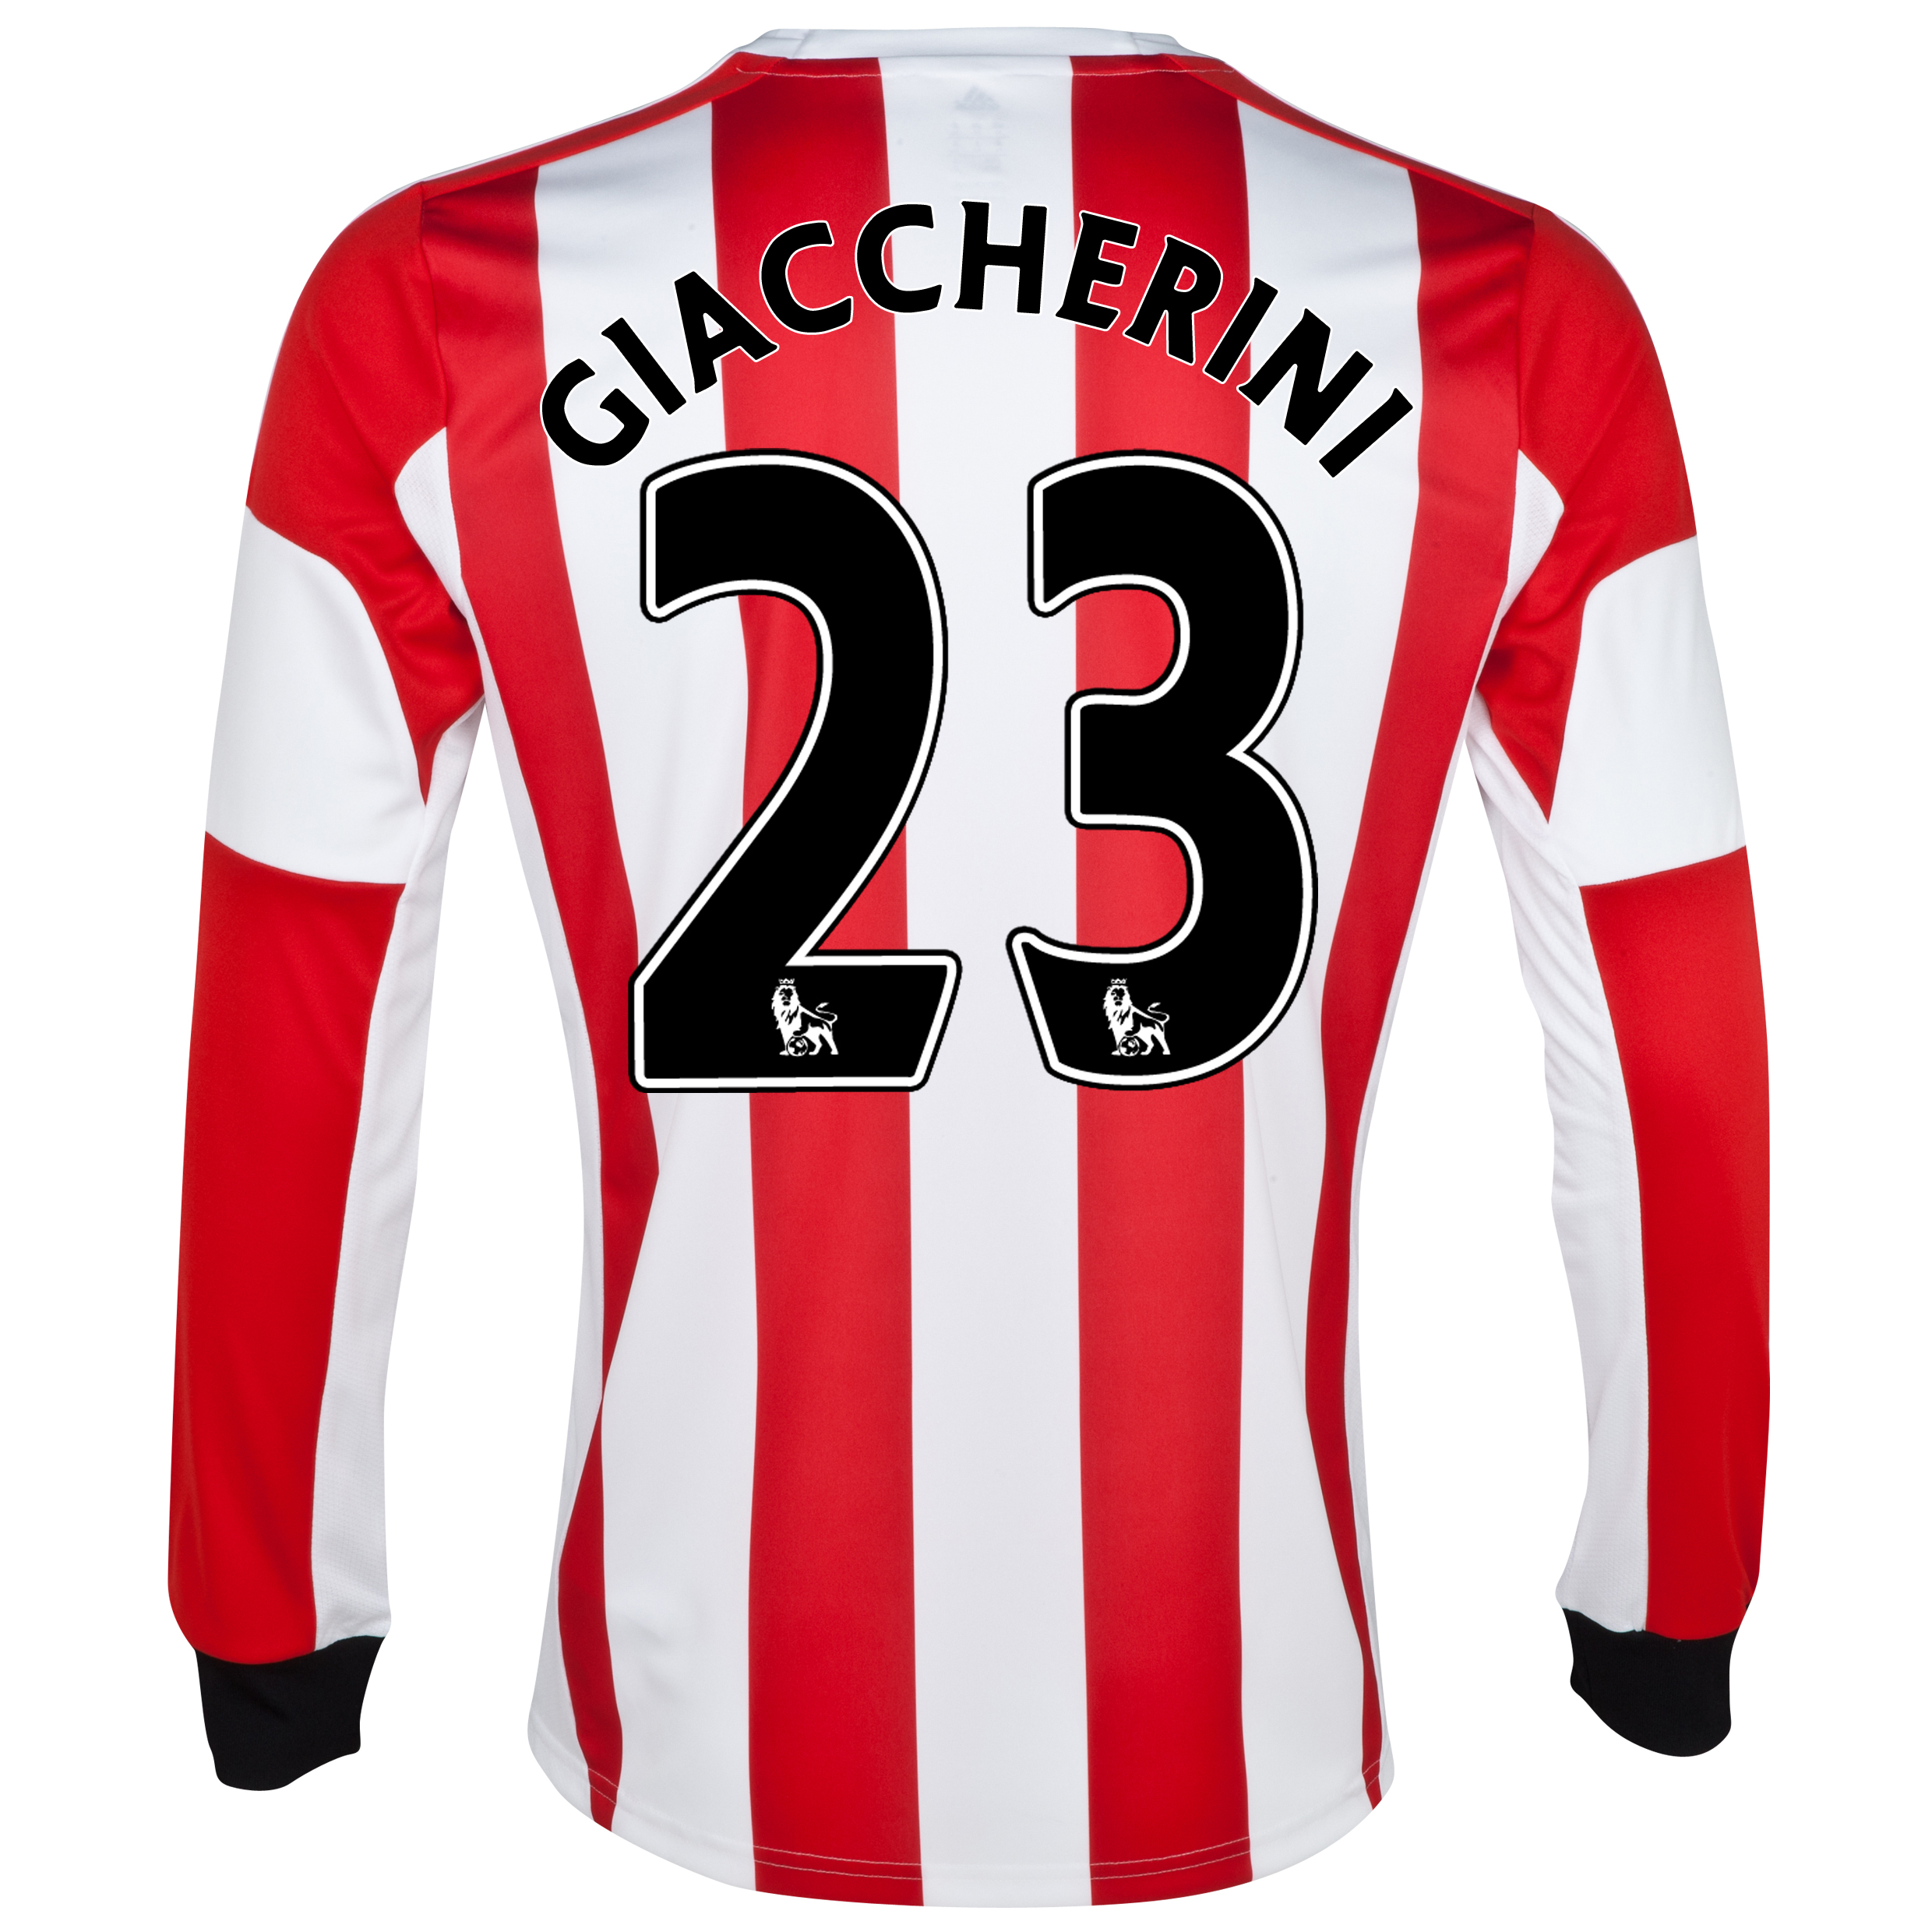 Sunderland Home Shirt 2013/14 - Long Sleeved with Giaccherini 23 printing